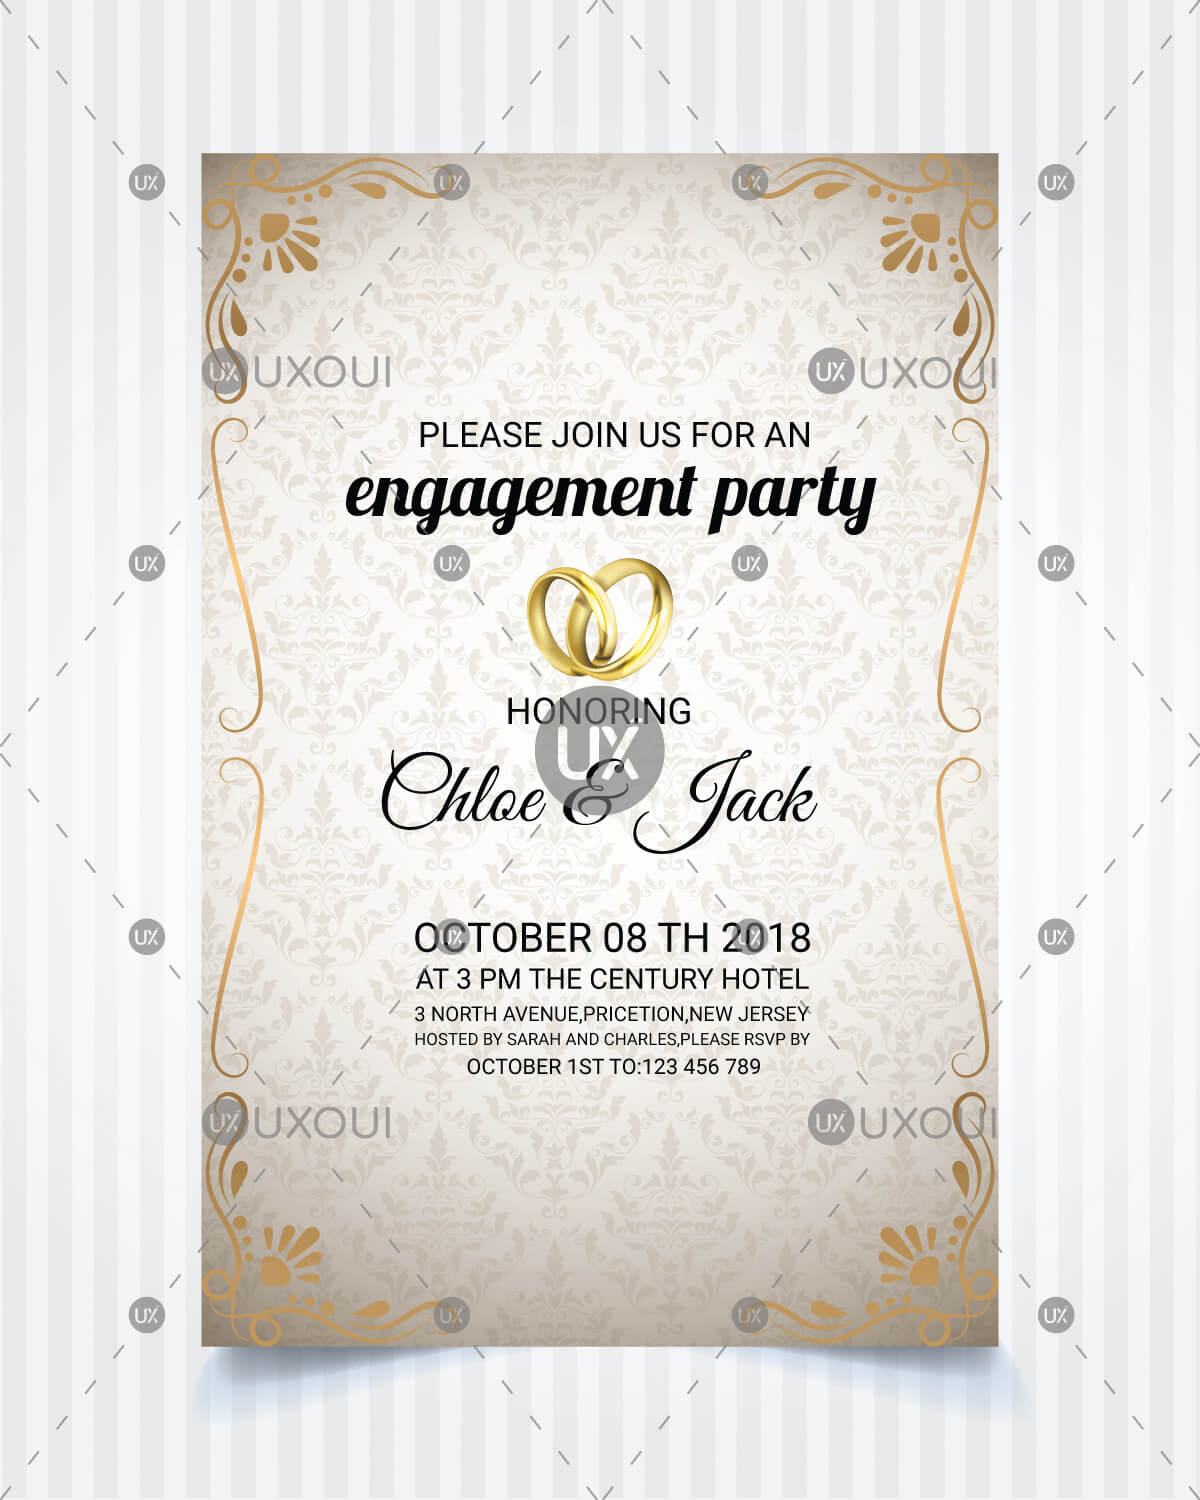 Vintage Style Wedding Engagement Party Invitation Card Template Design  Vector throughout Engagement Invitation Card Template